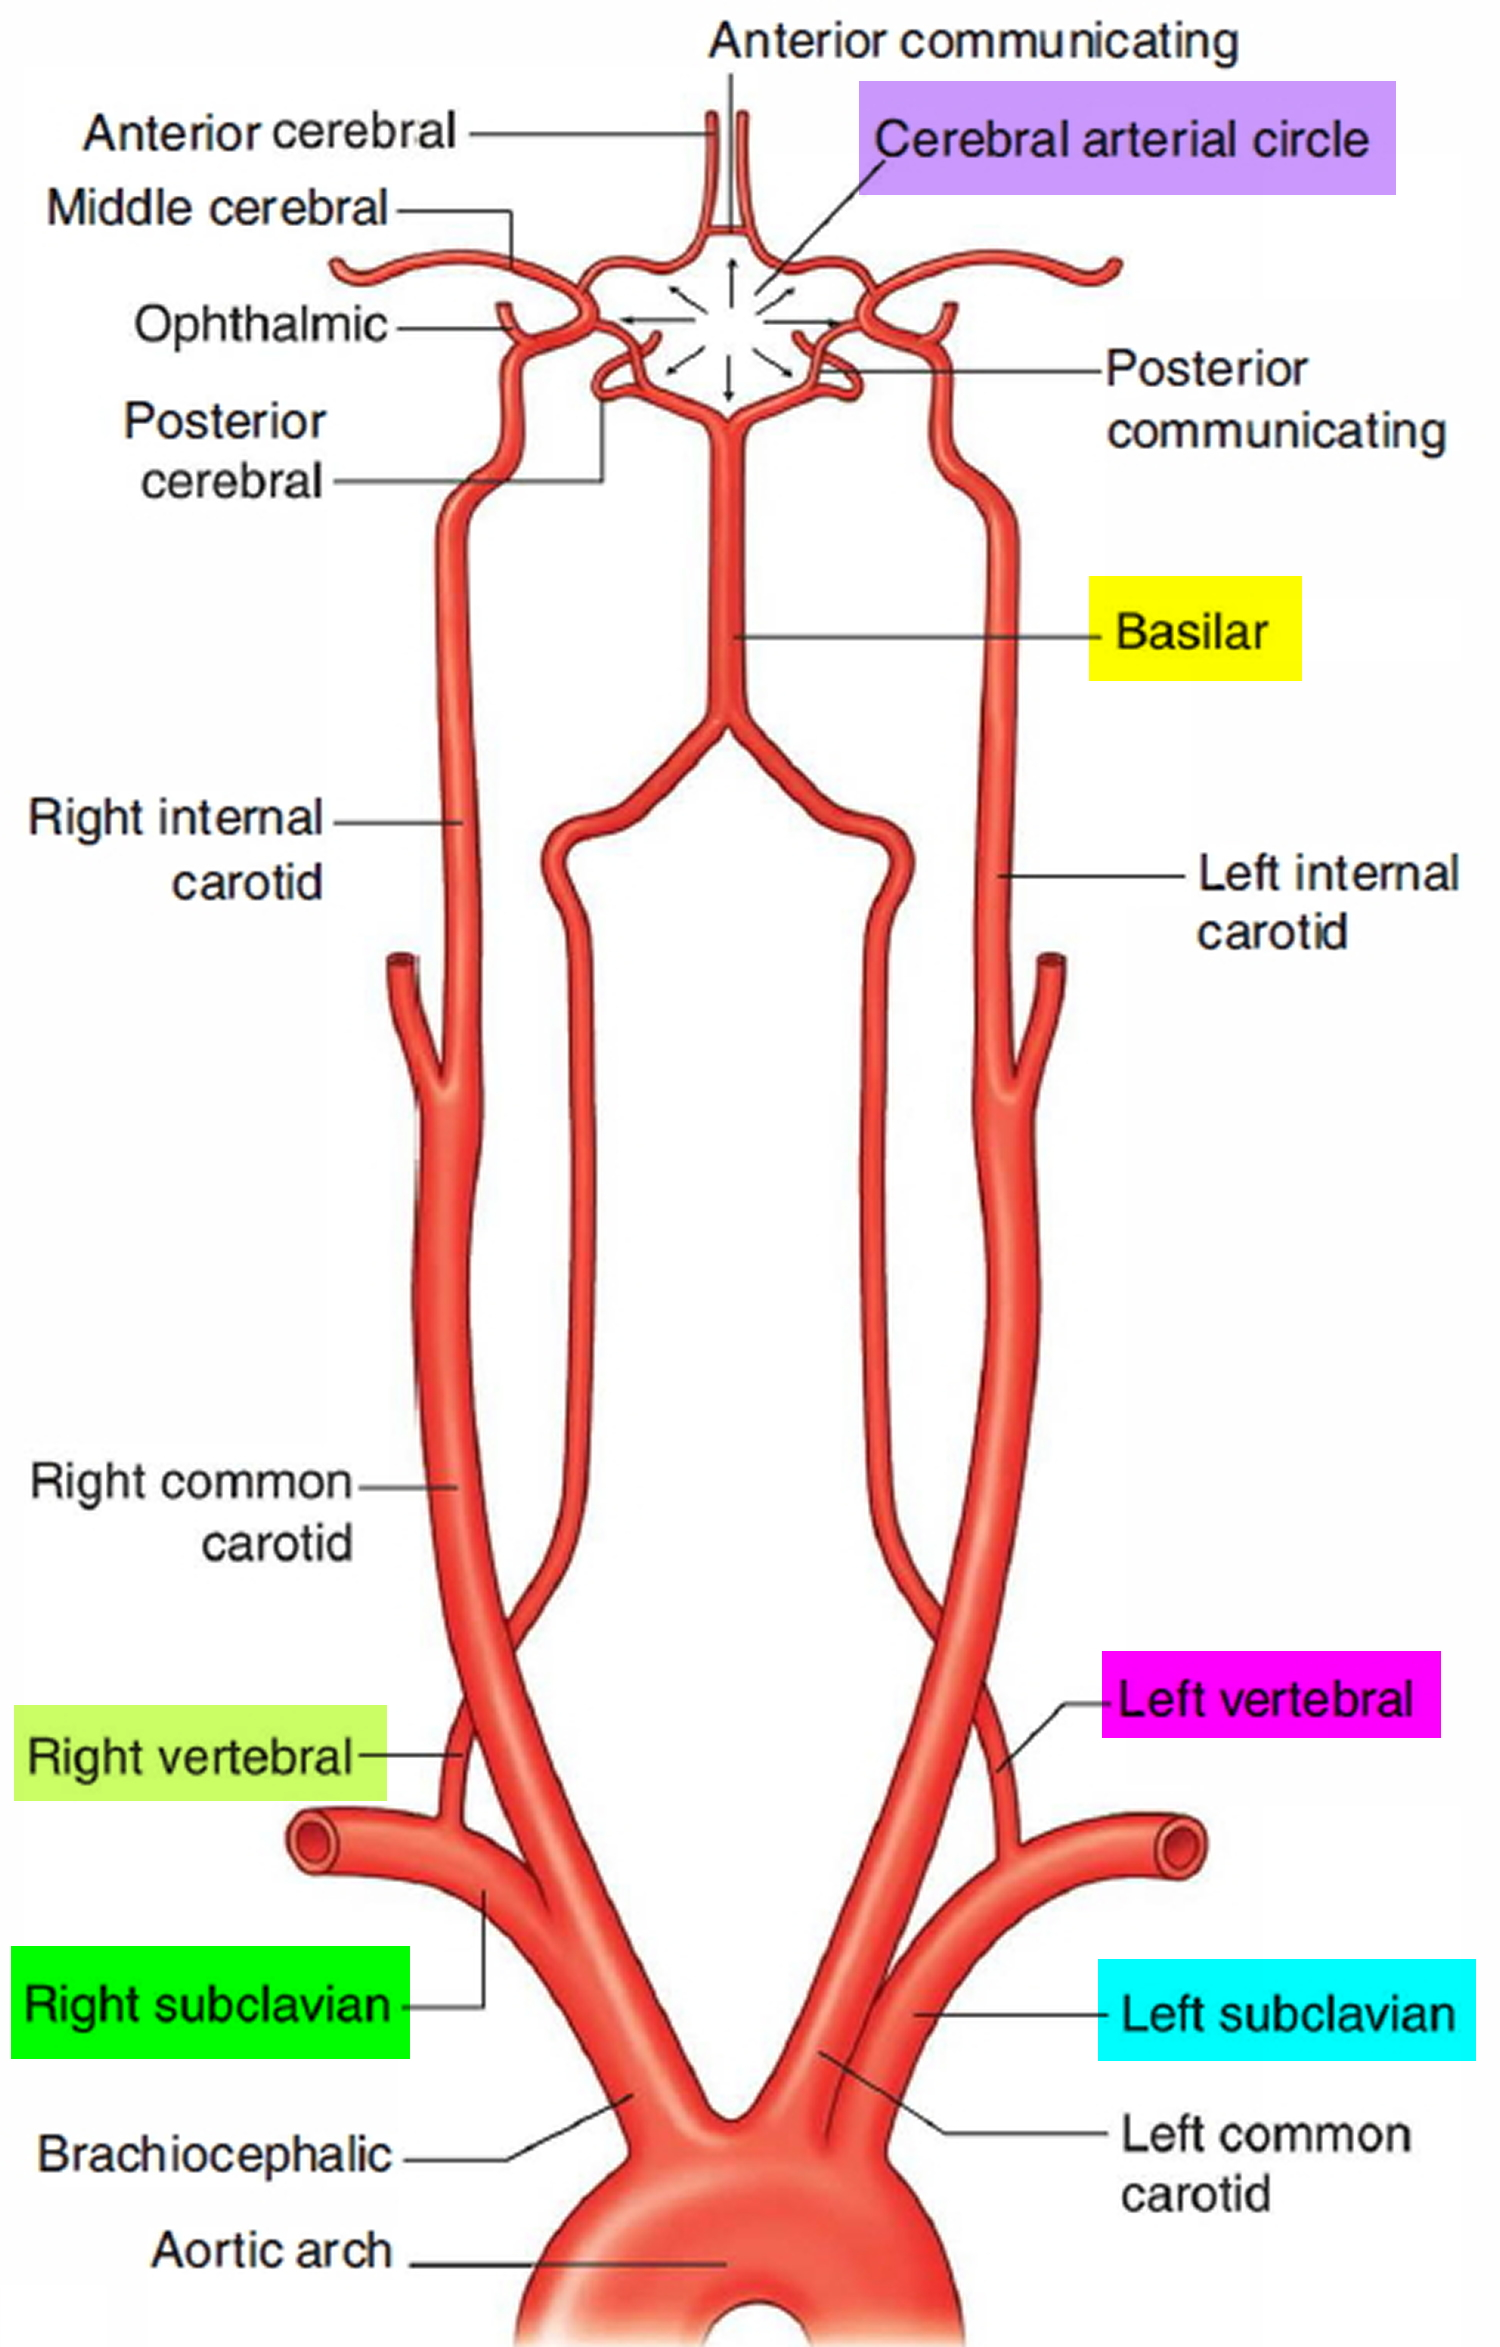 Left and Right Subclavian Artery Function, Branches, Stenosis